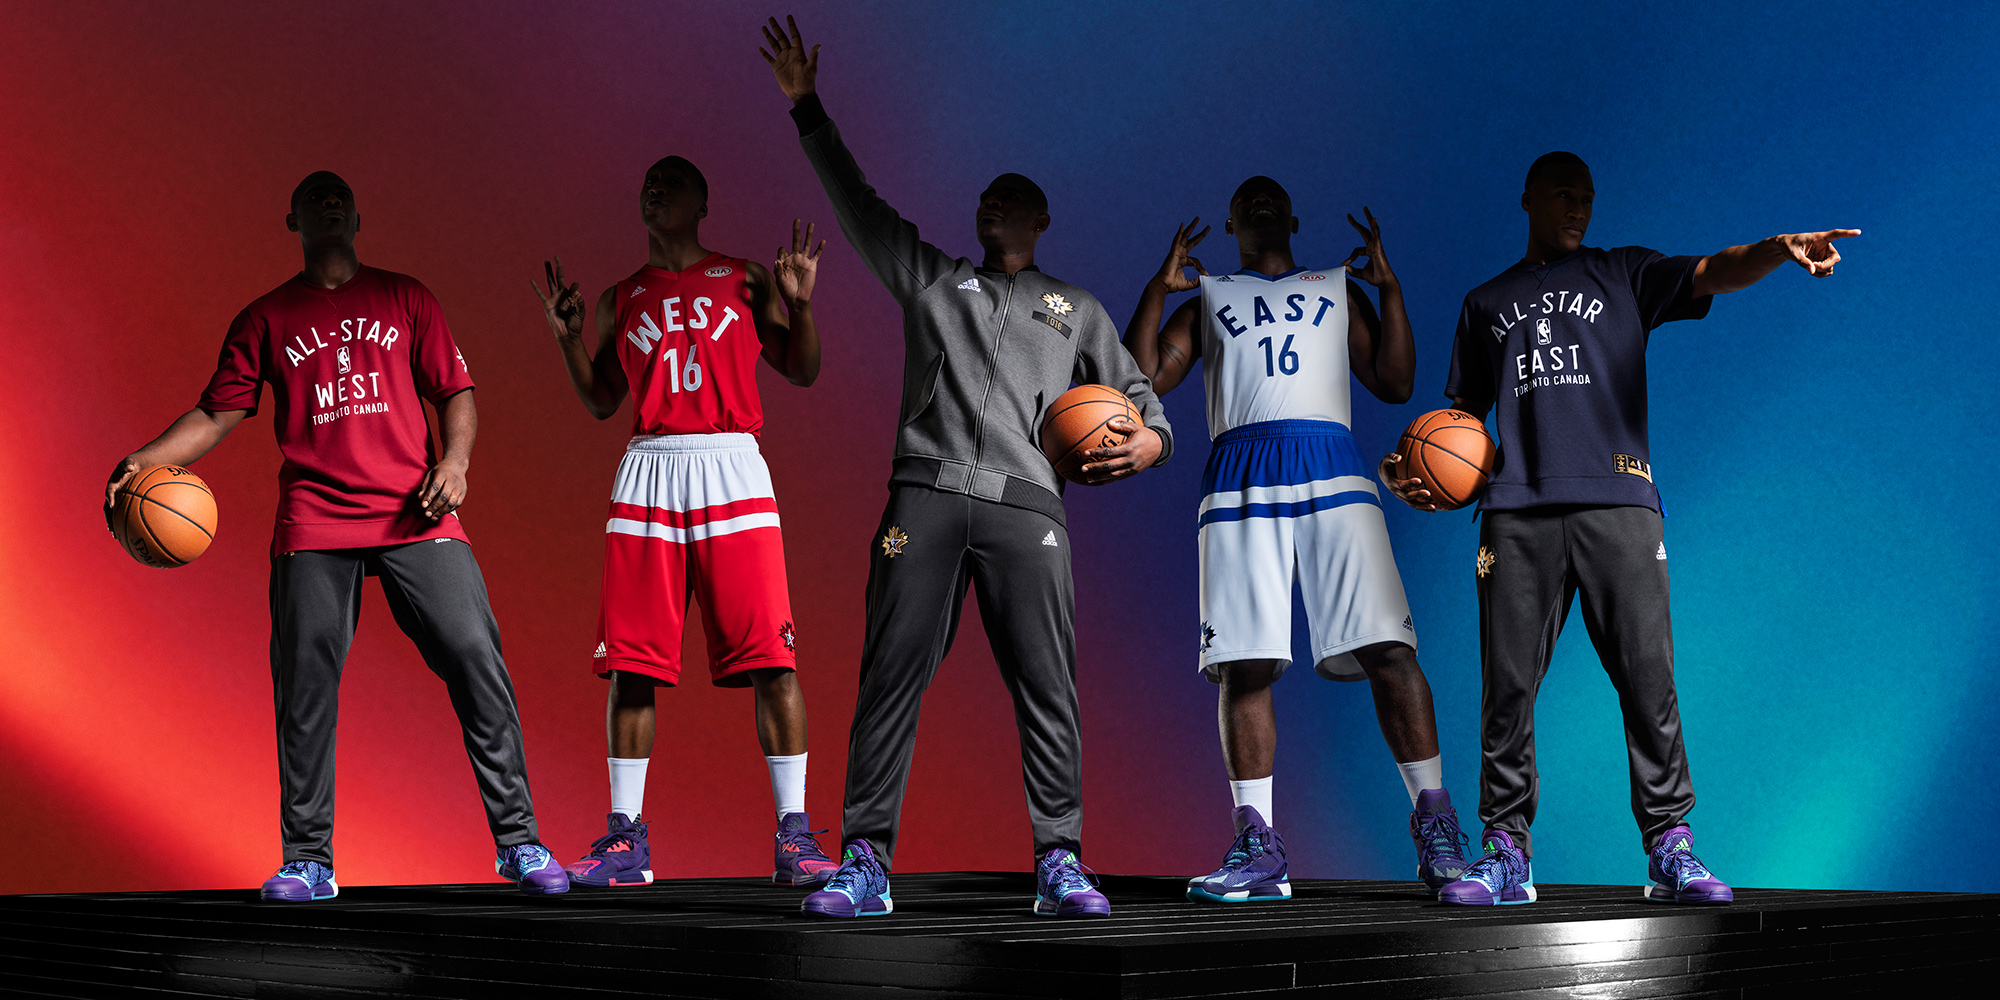 f8d6967dd06 2016 NBA All-Star Game Jerseys Unveiled | Eastbay Blog : Eastbay Blog